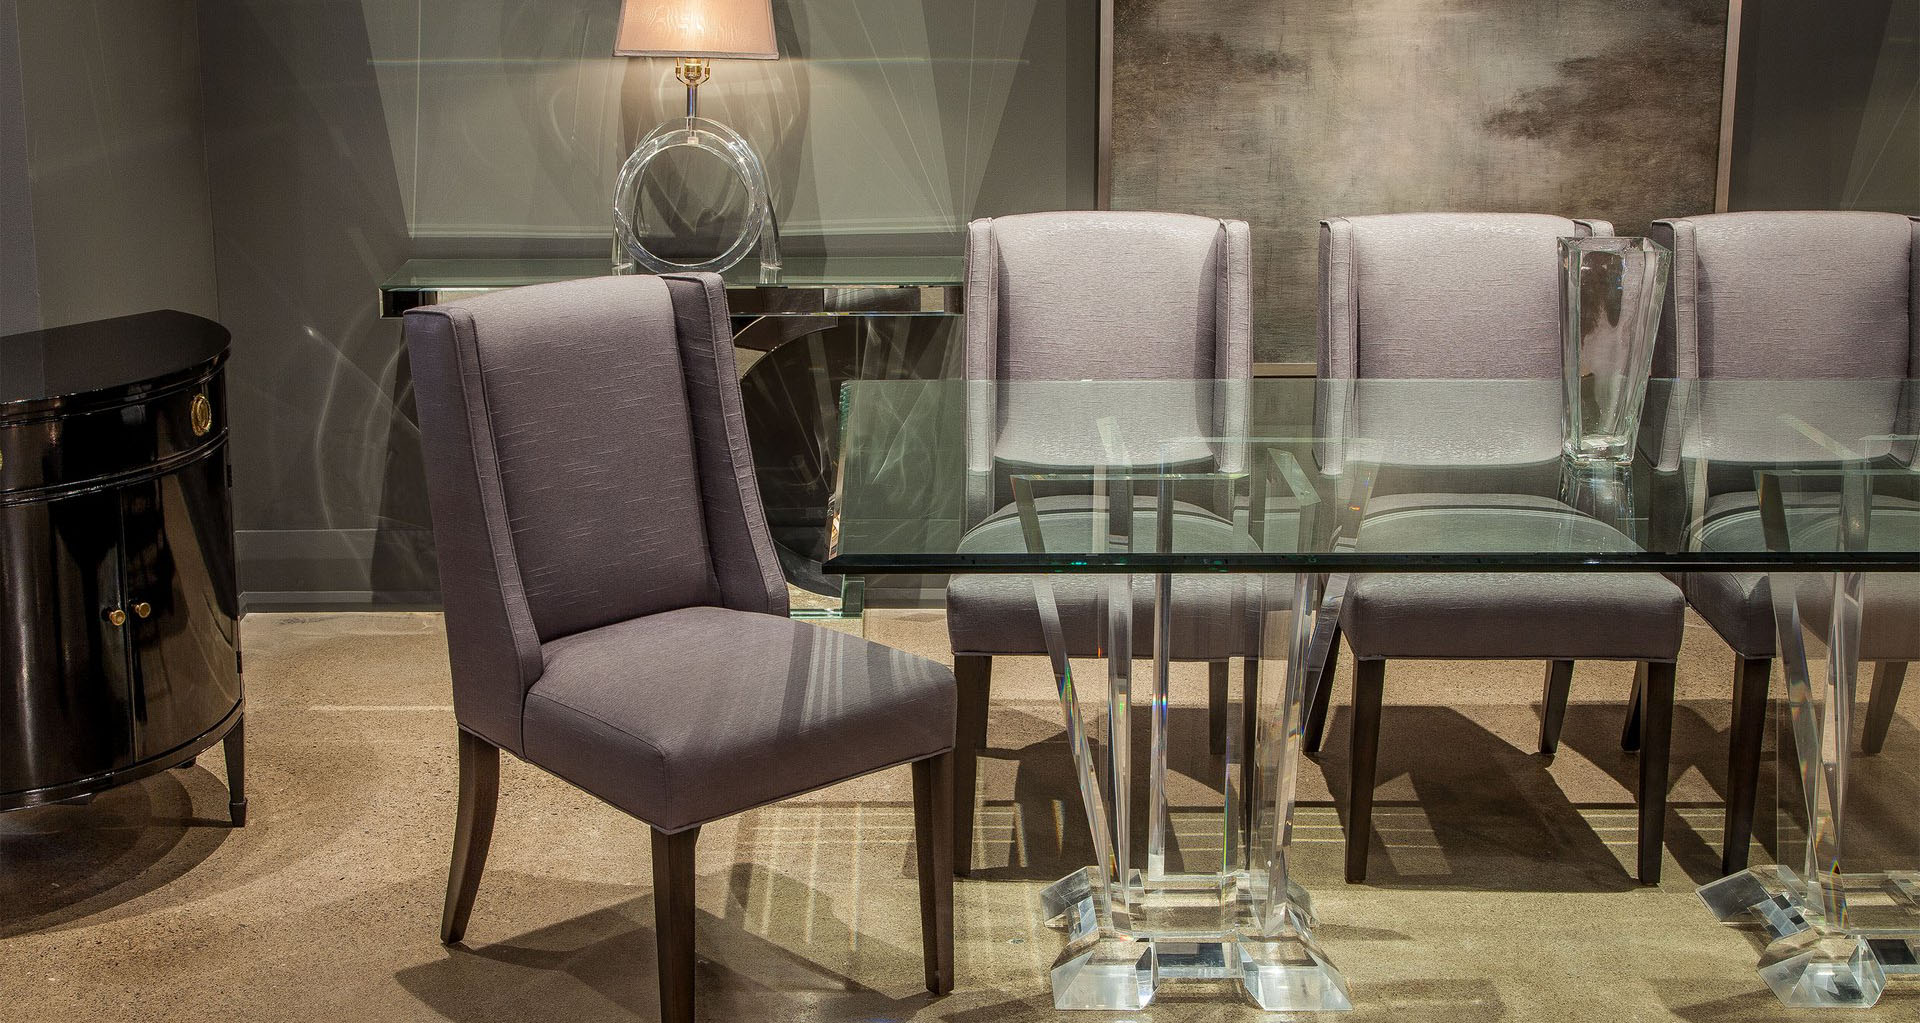 An Elegant High-End Dining Table with Glass Top